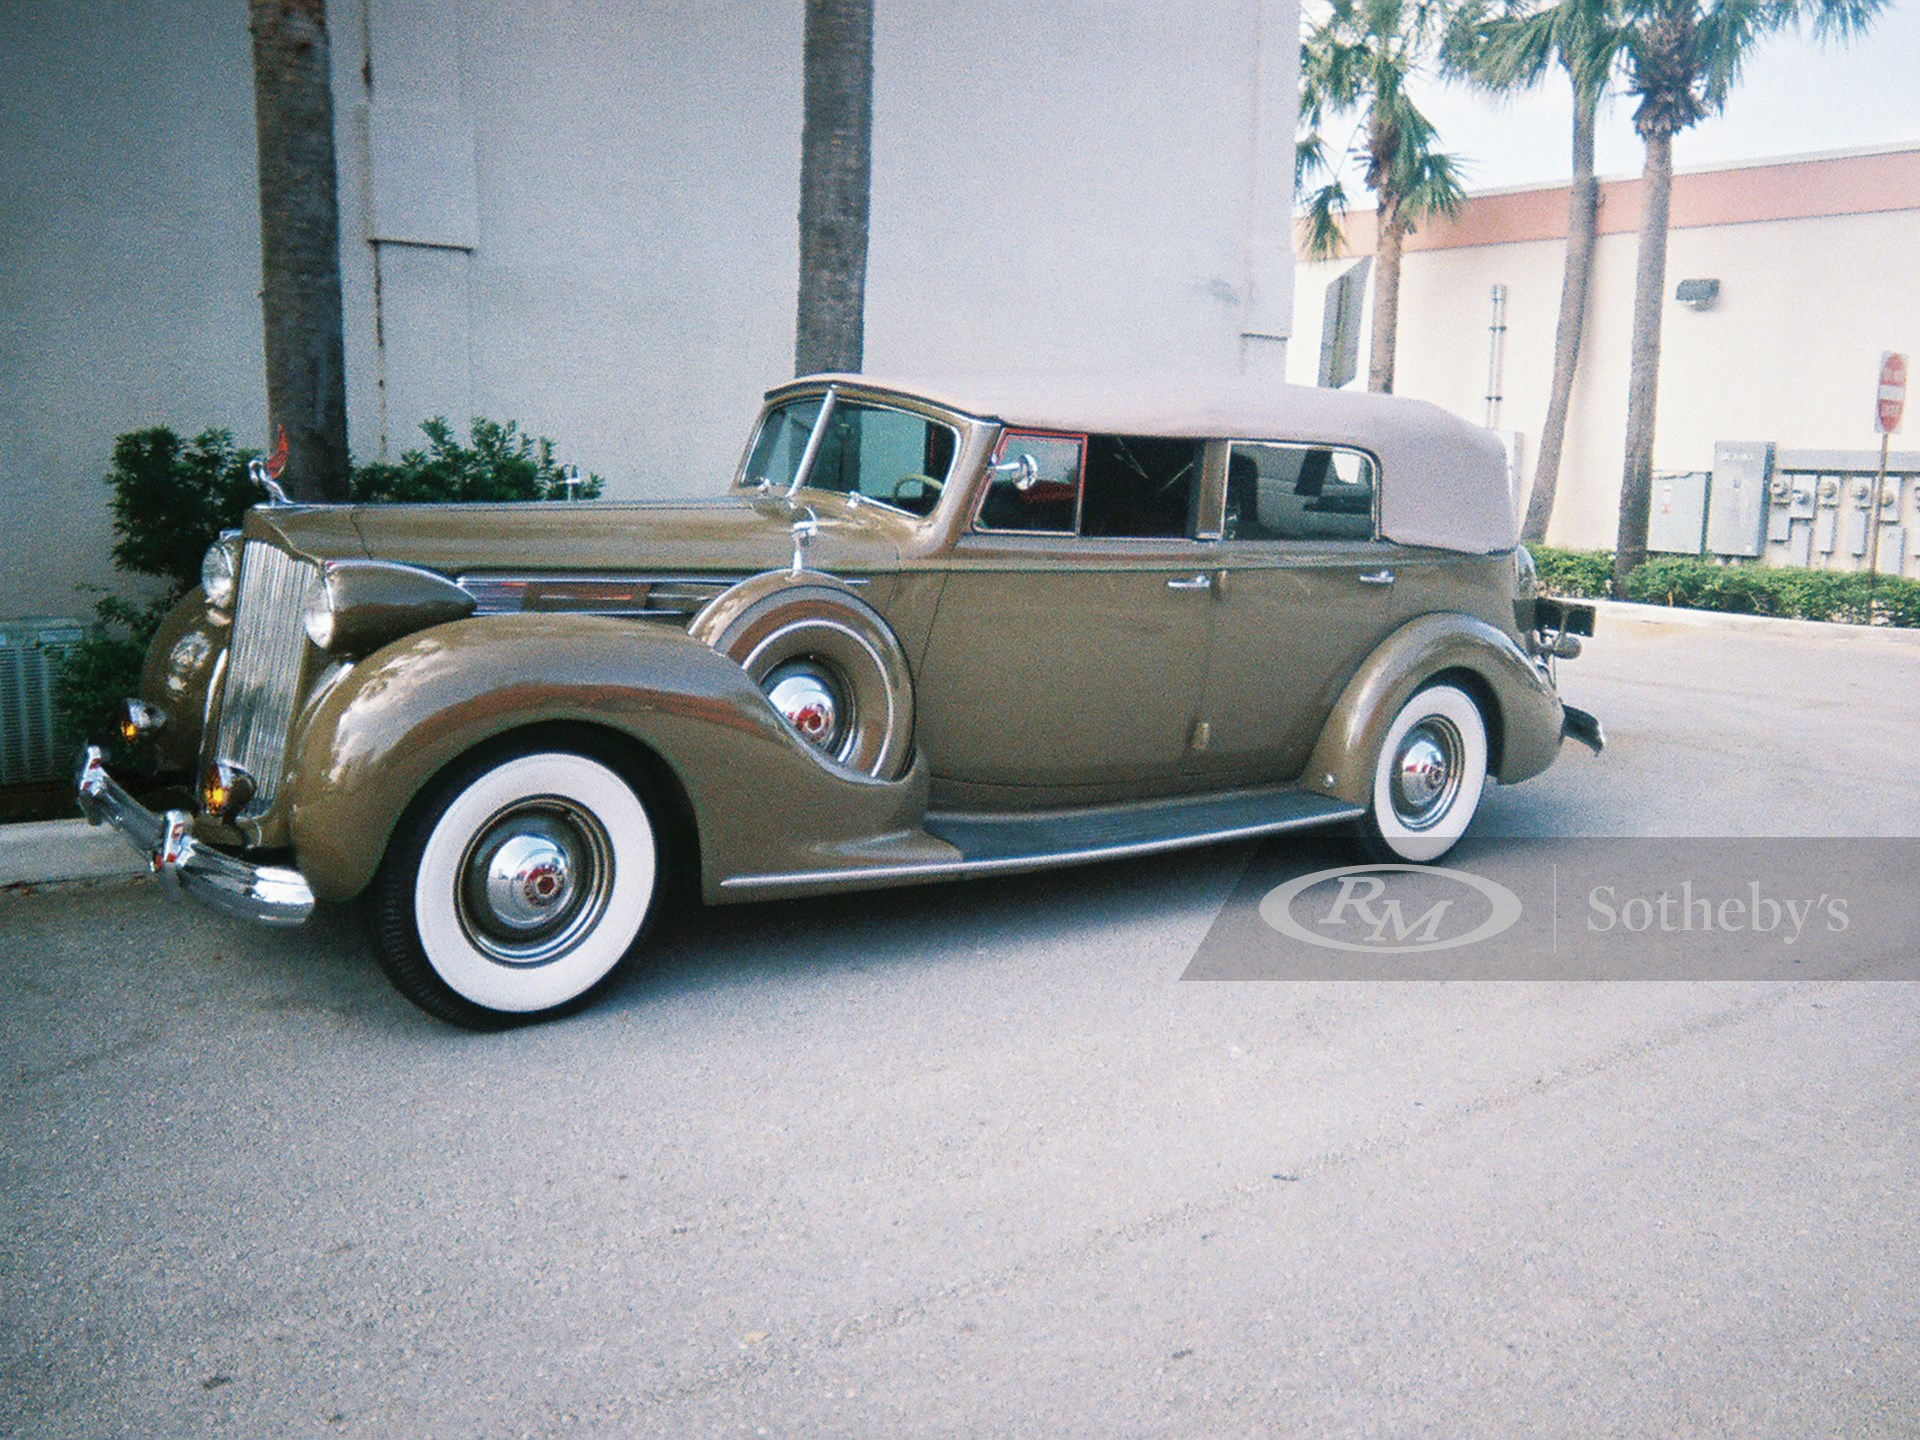 1938 Packard Model 1608 12 Cylinder Convertible Sedan  -